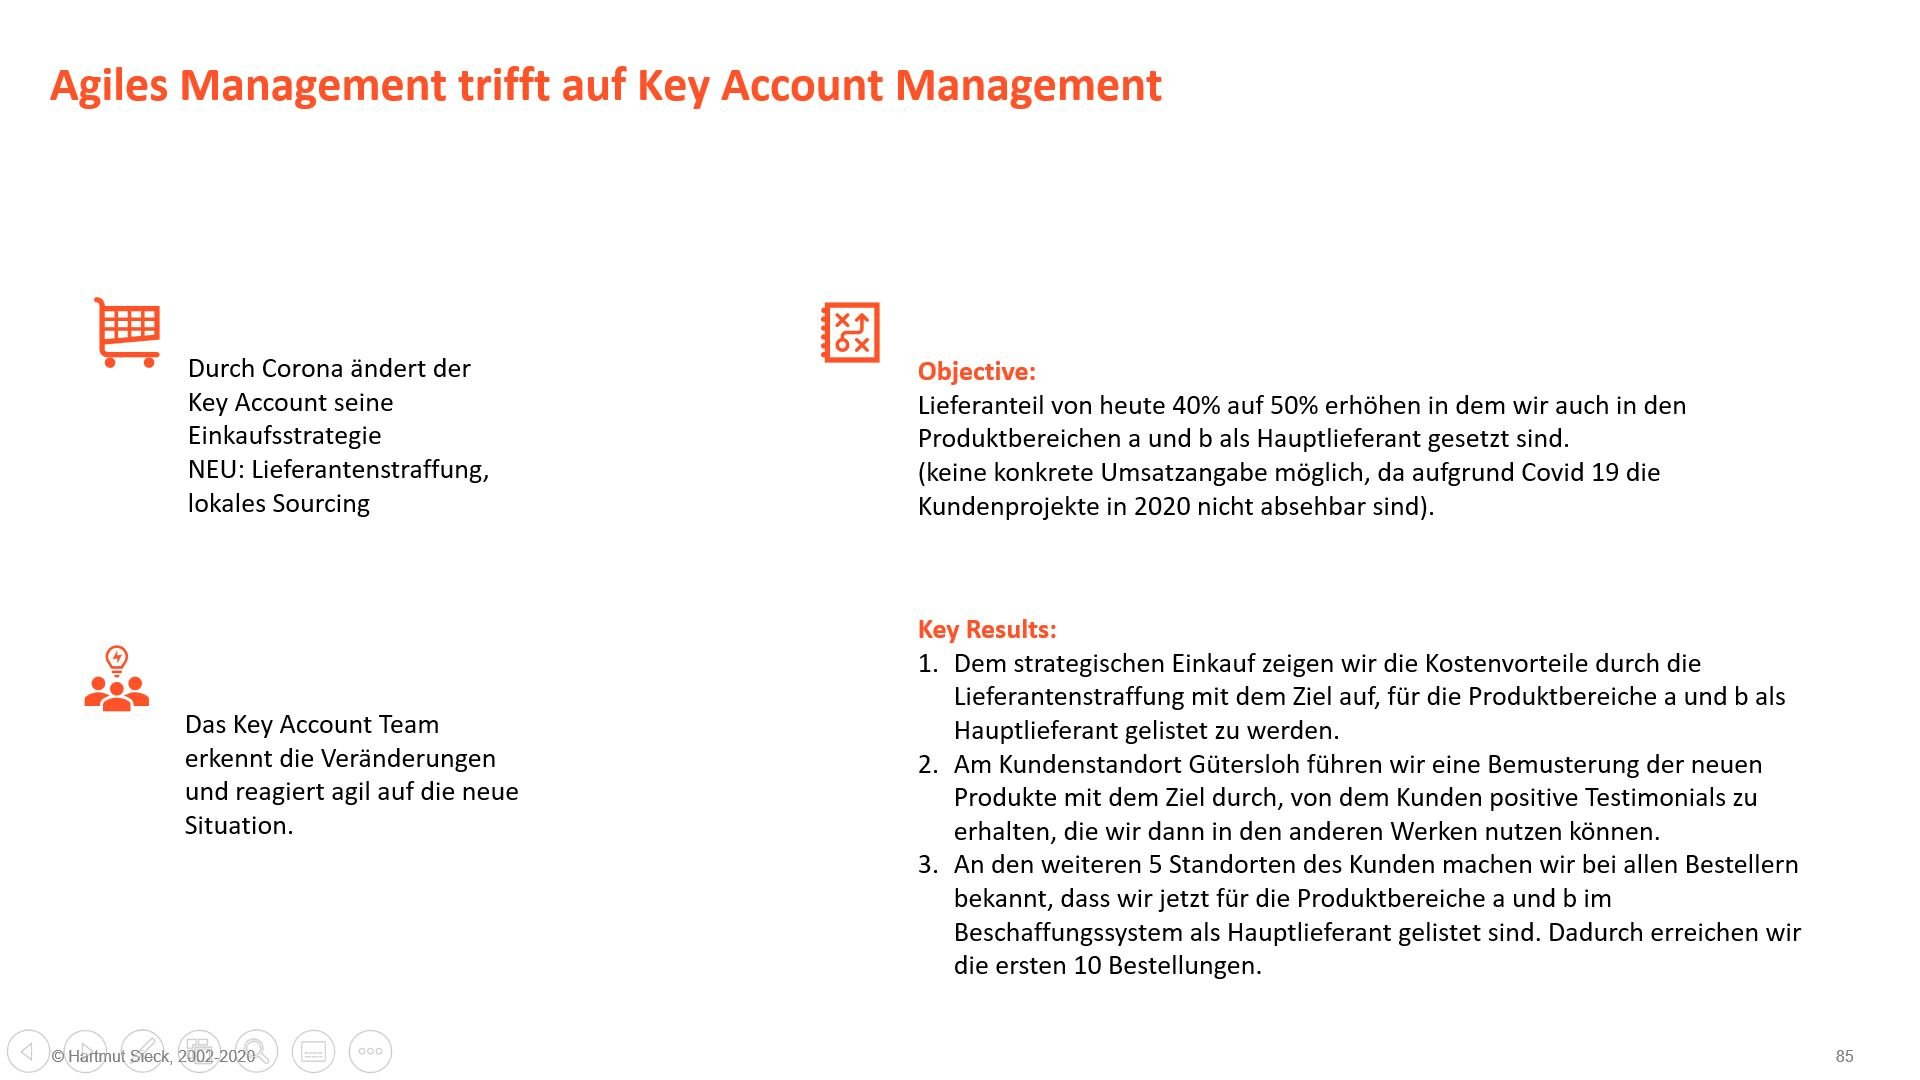 Agiles Key Account Management (OKR)